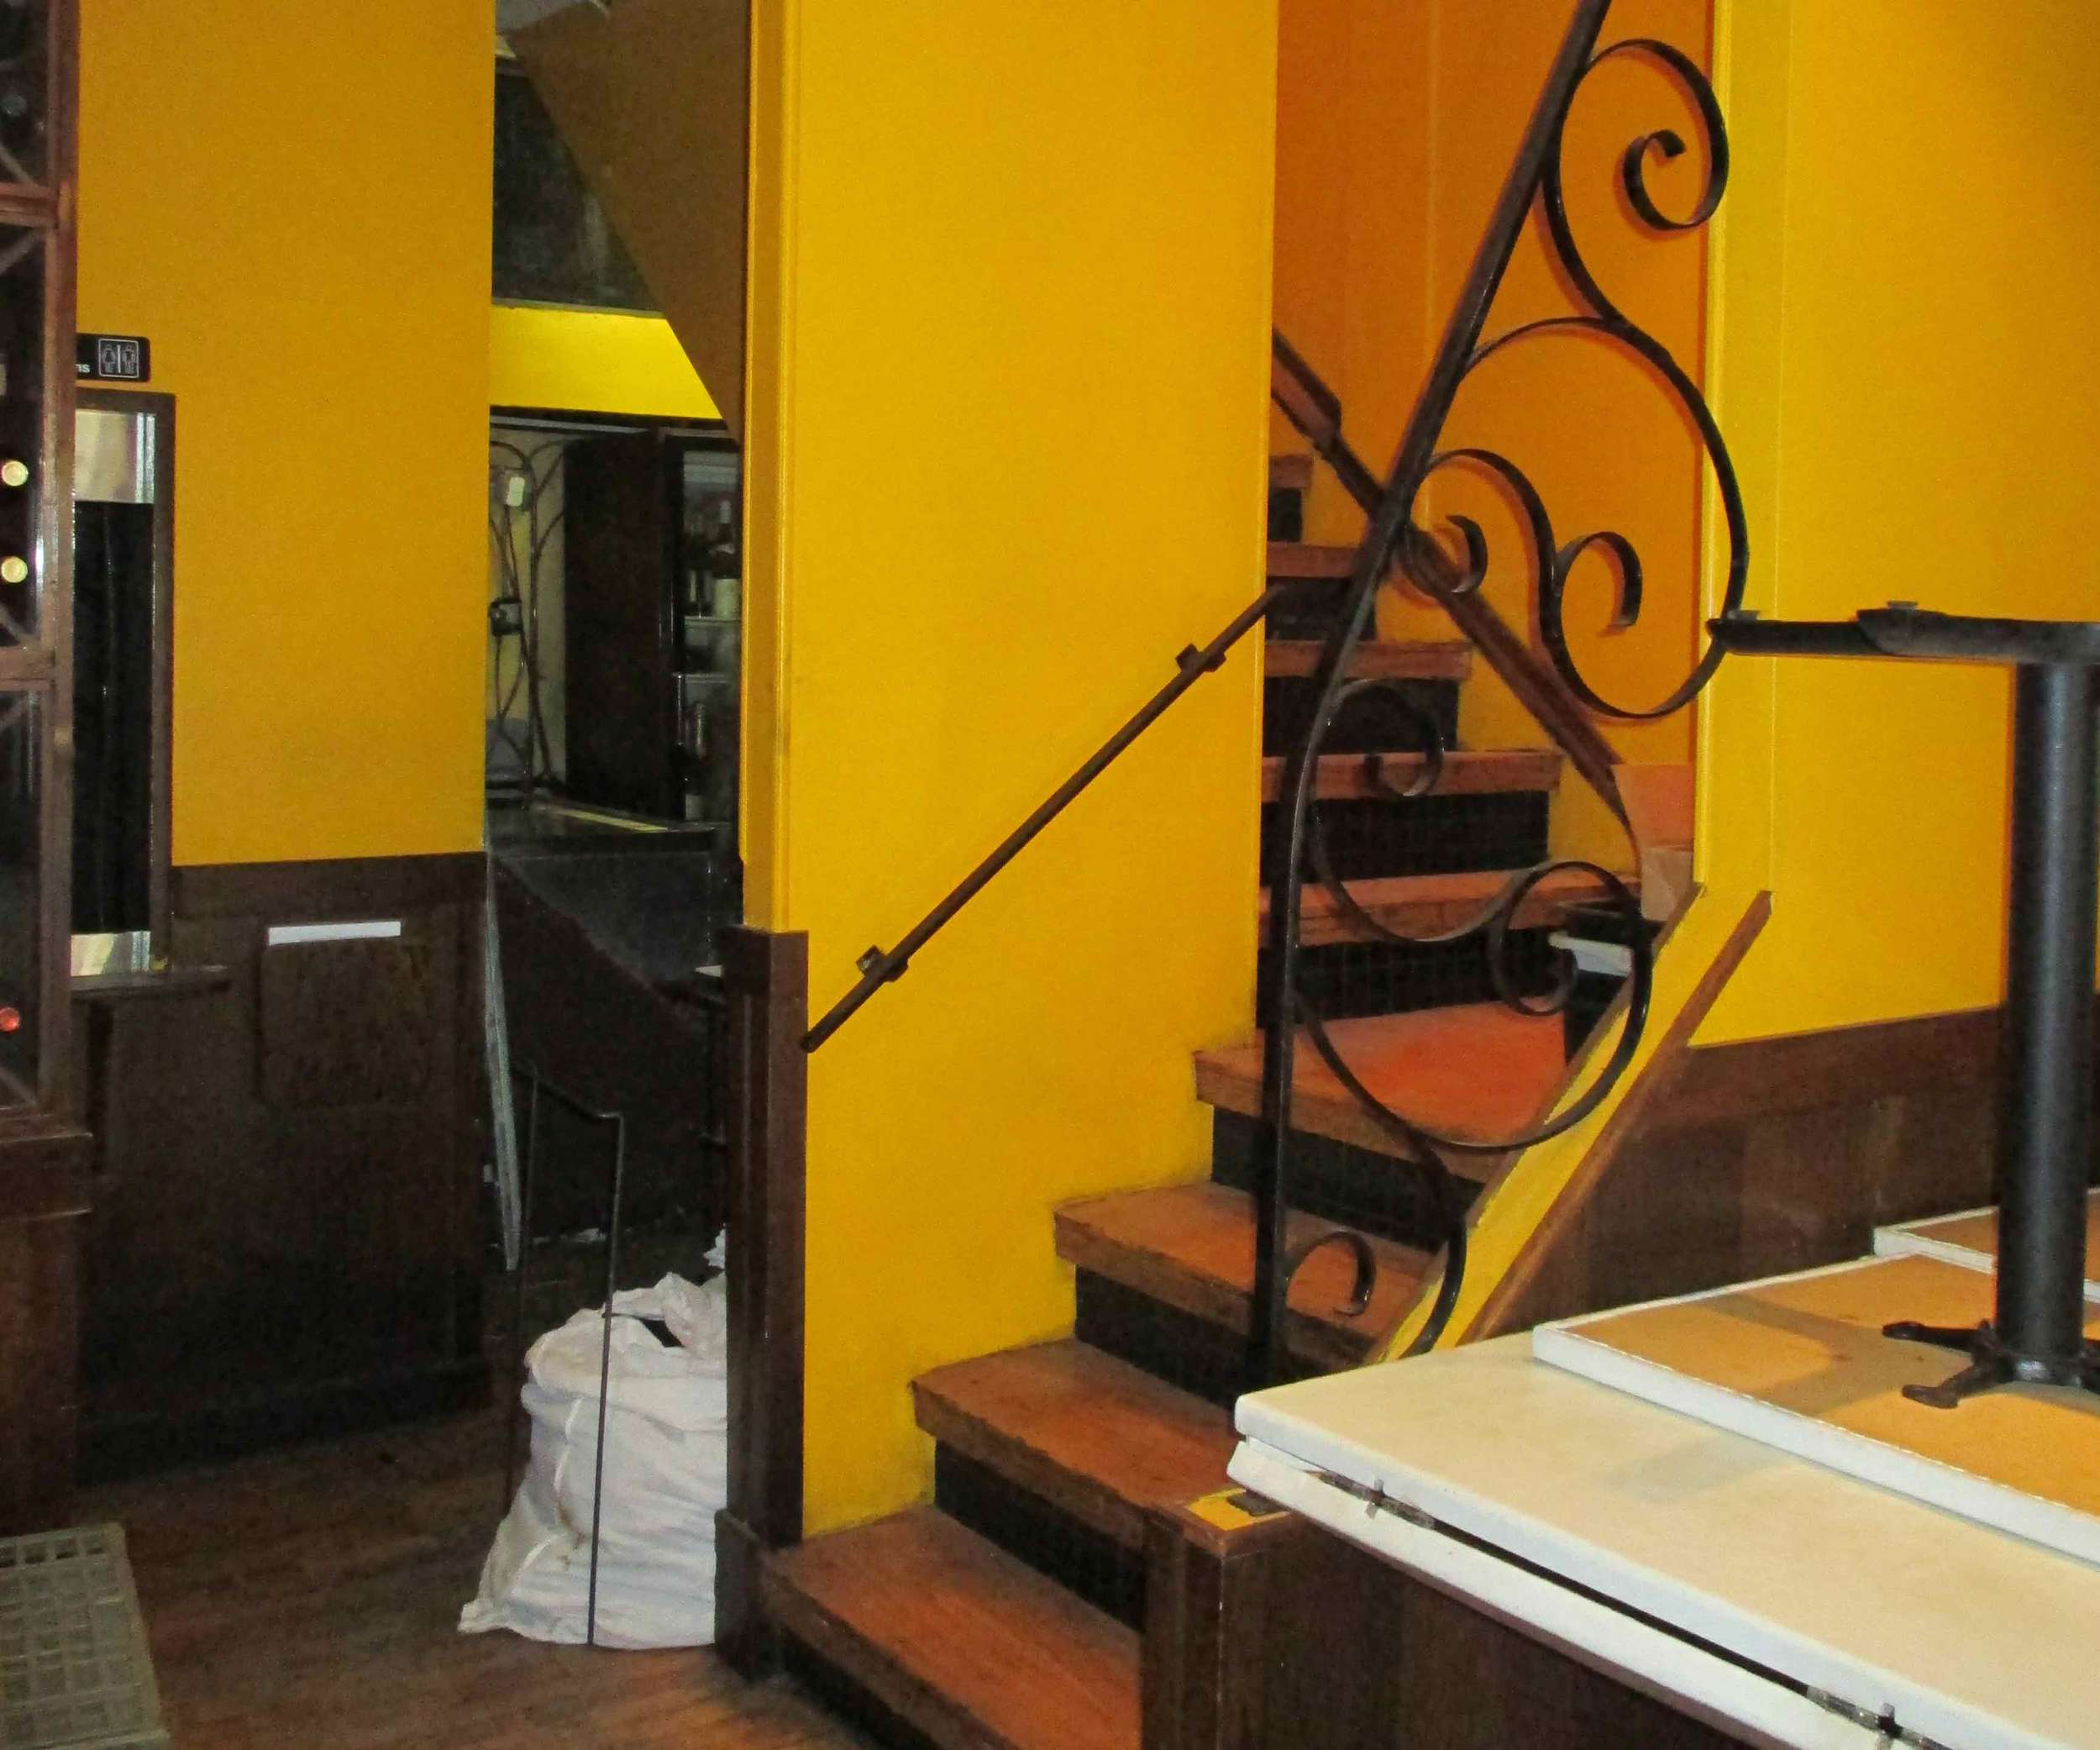 BEFORE: A swirly handrail defines the staircase area.